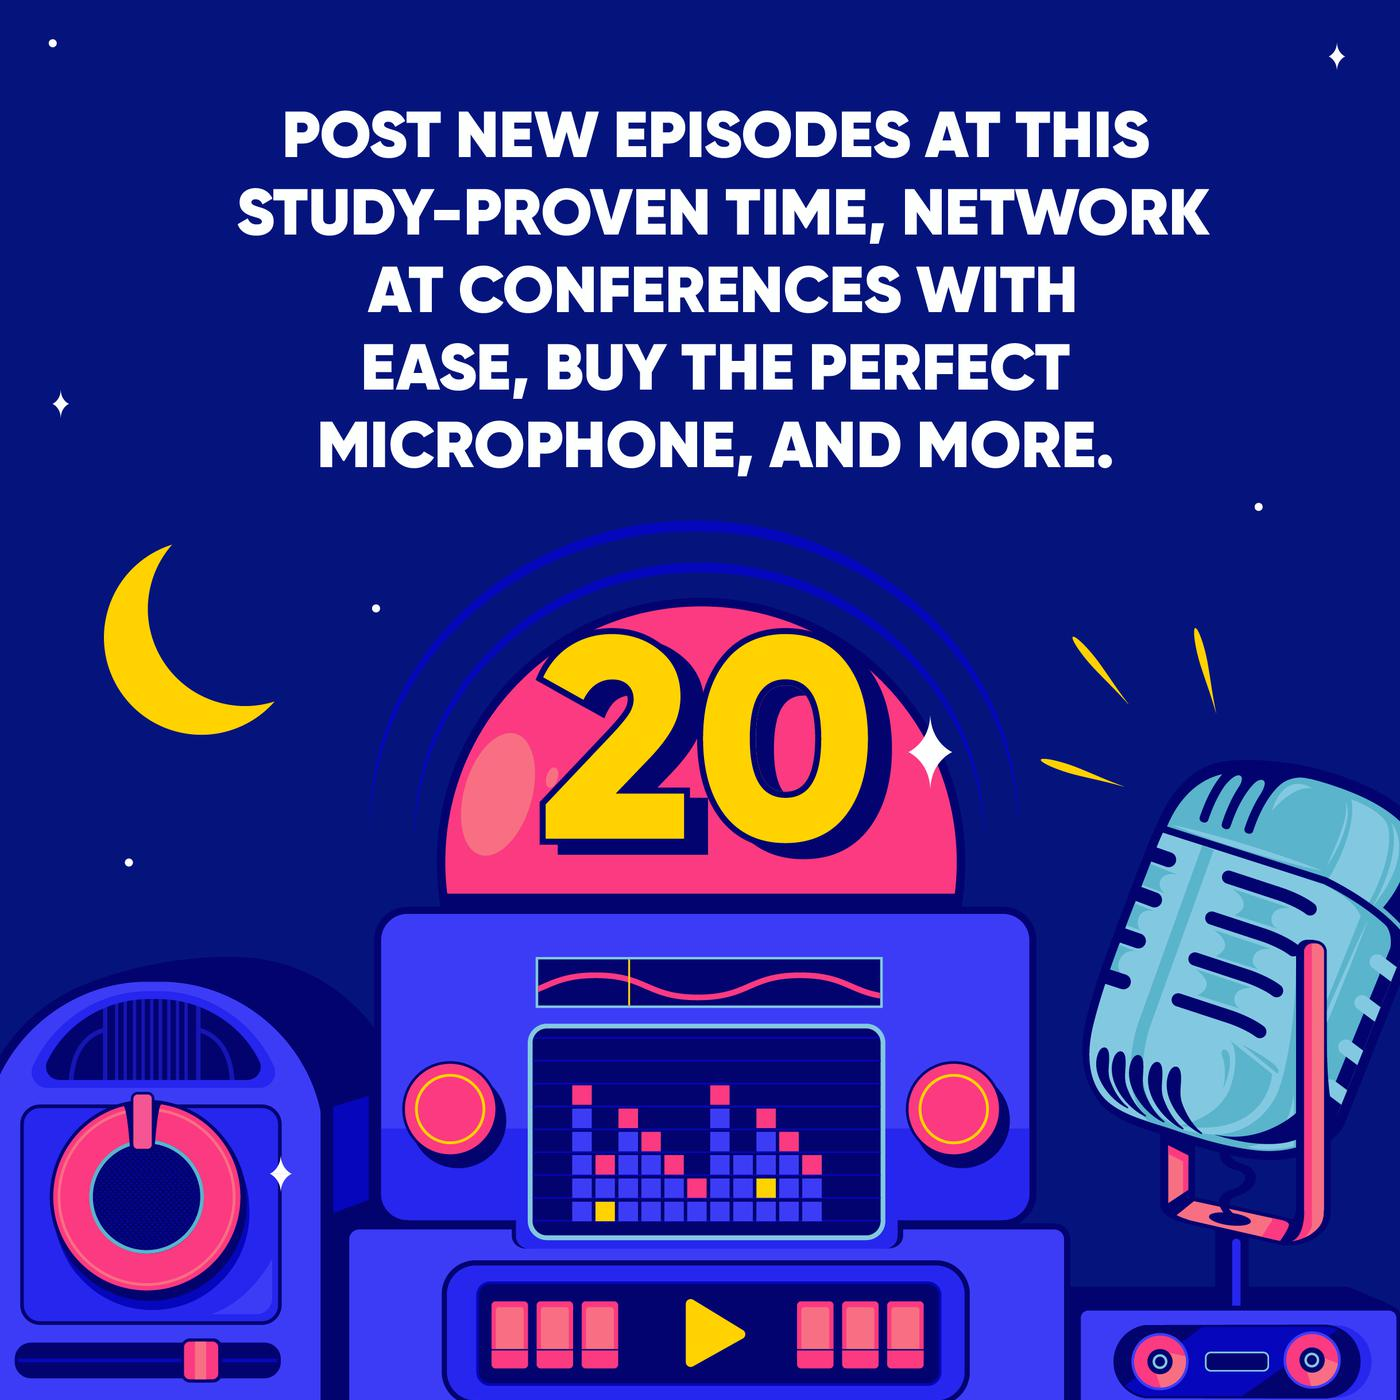 Post new Episodes at this Study-proven Time, Network at Conferences with Ease, Buy the Perfect Microphone, and More.